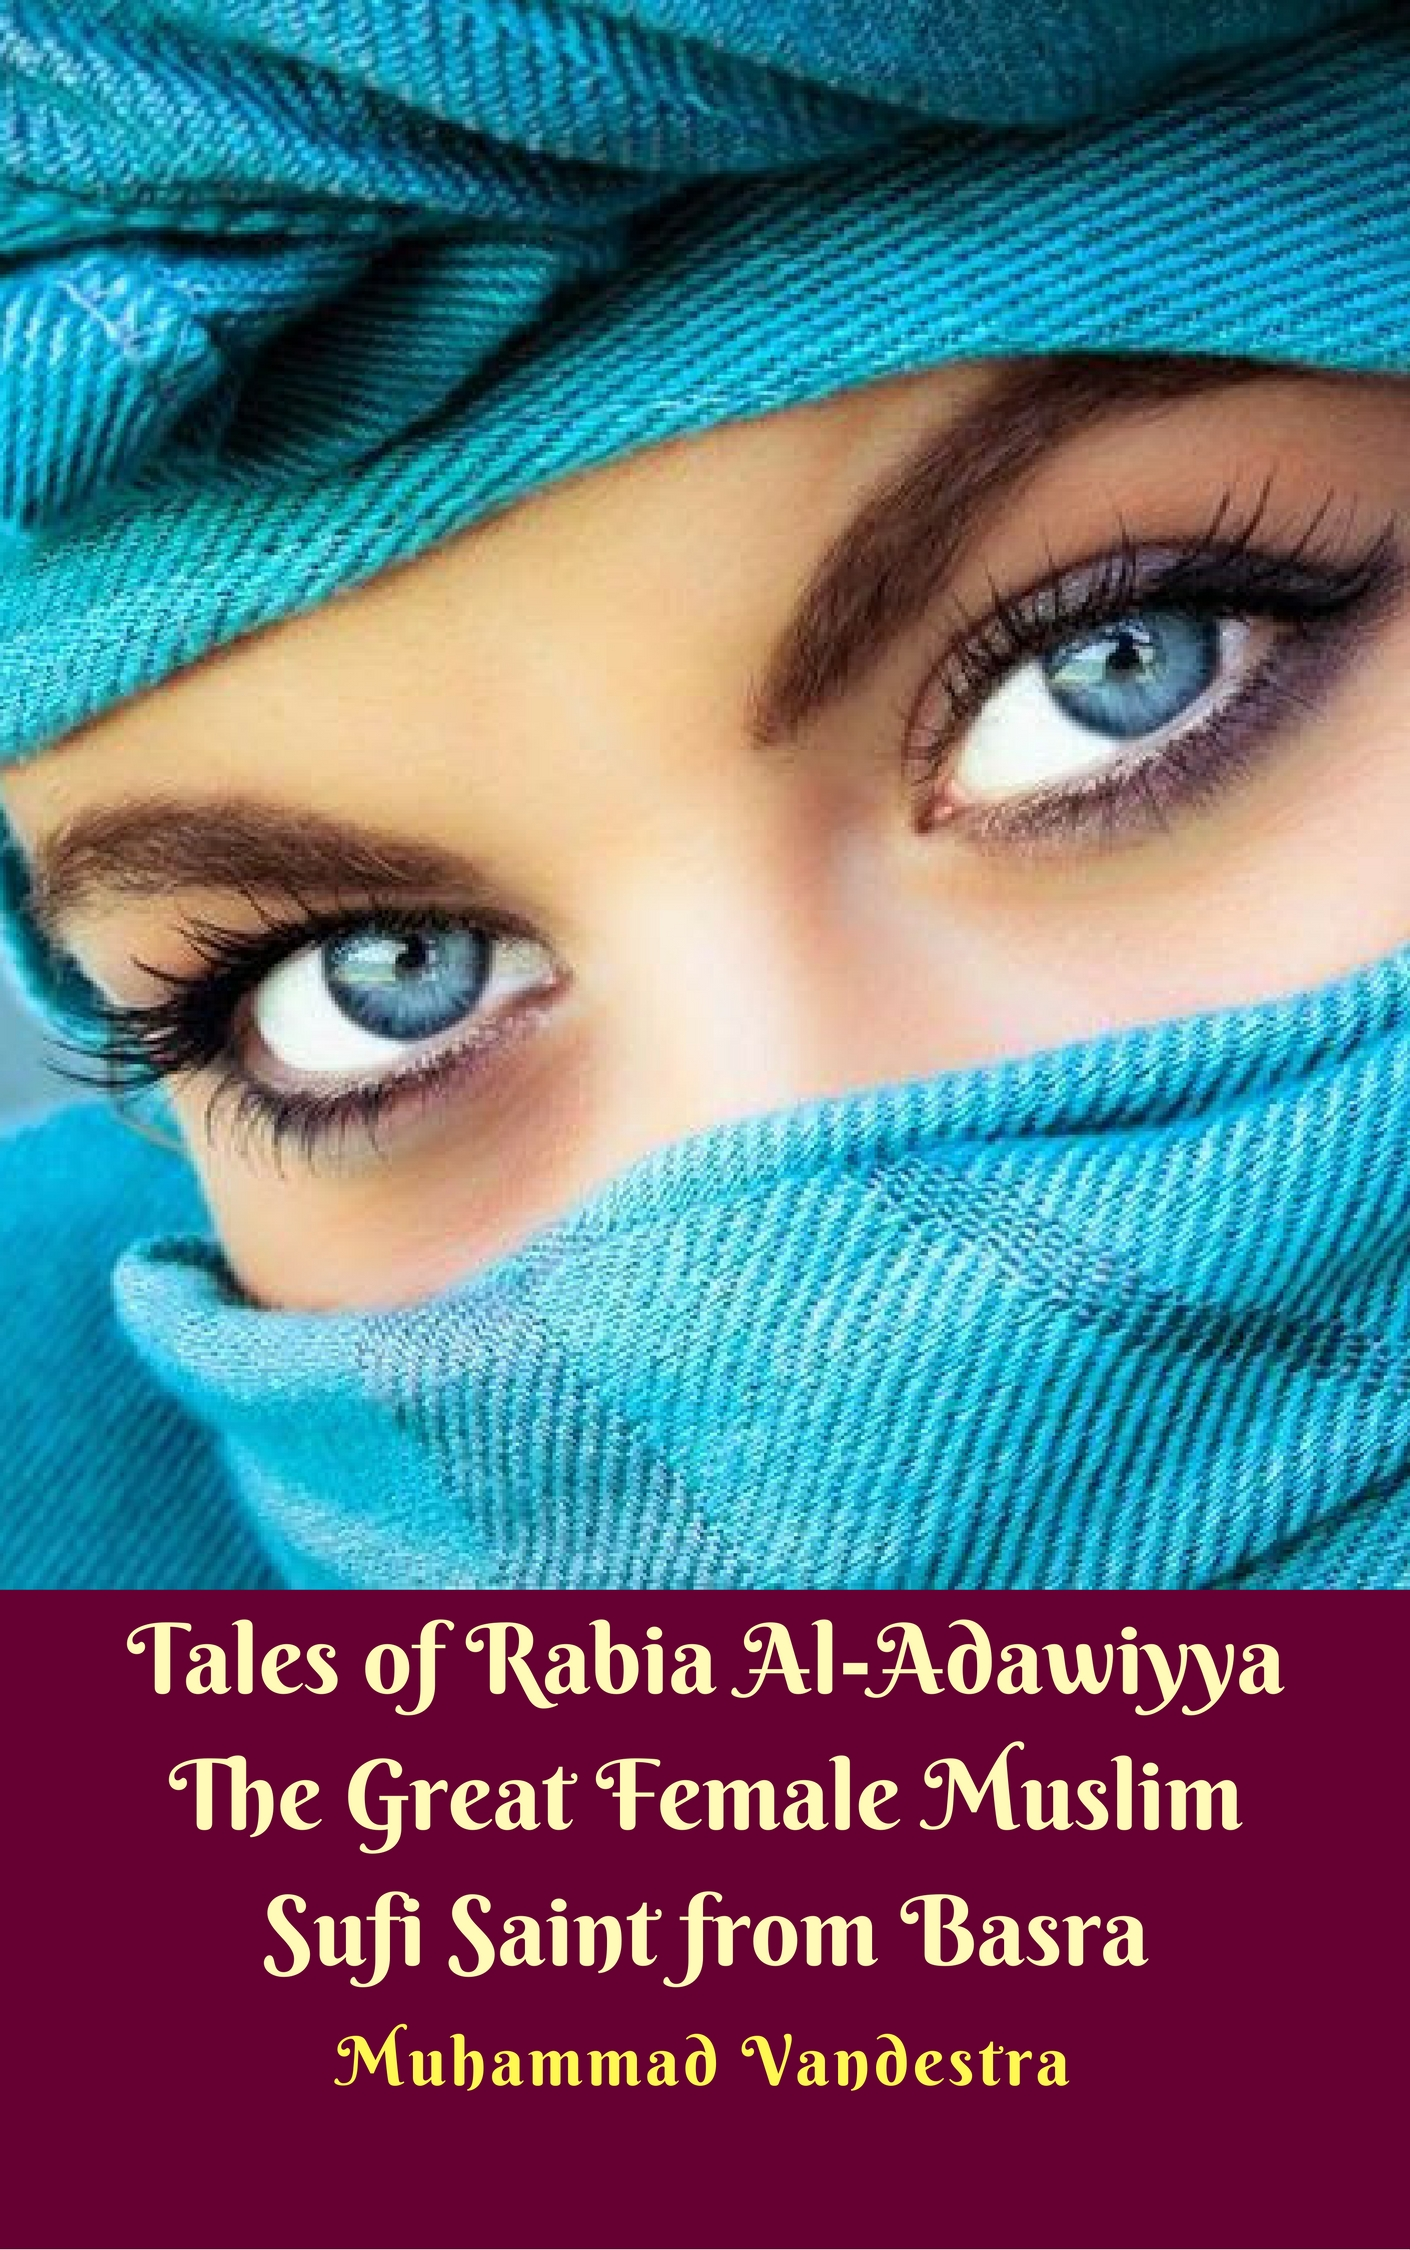 Tales of Rabia Al-Adawiyya The Great Female Muslim Sufi Saint from Basra By Muhammad Vandestra